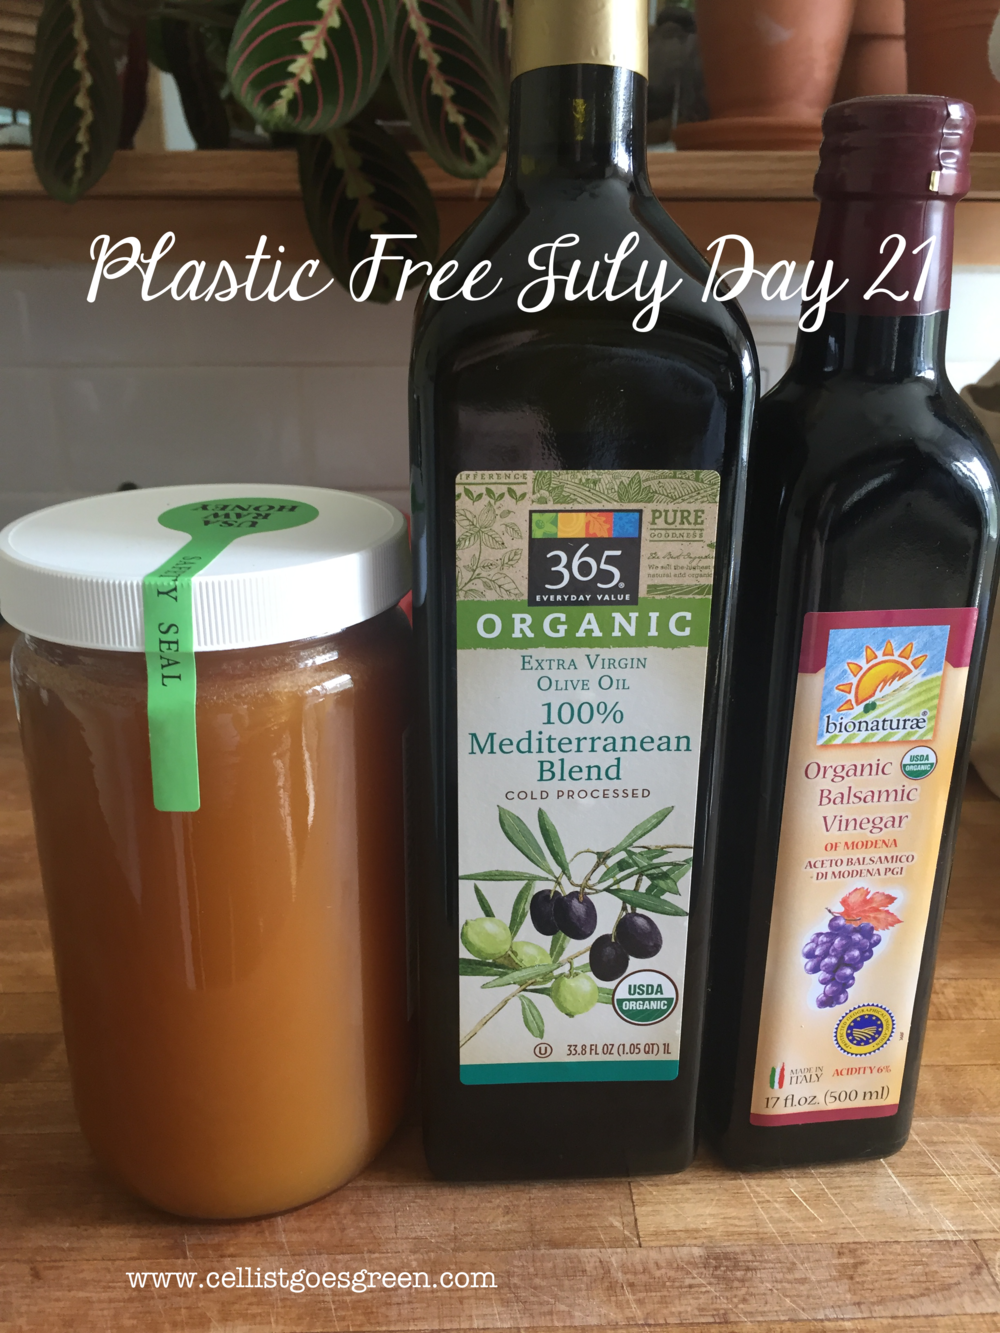 Plastic Free July Day 21  | Cellist Goes Green